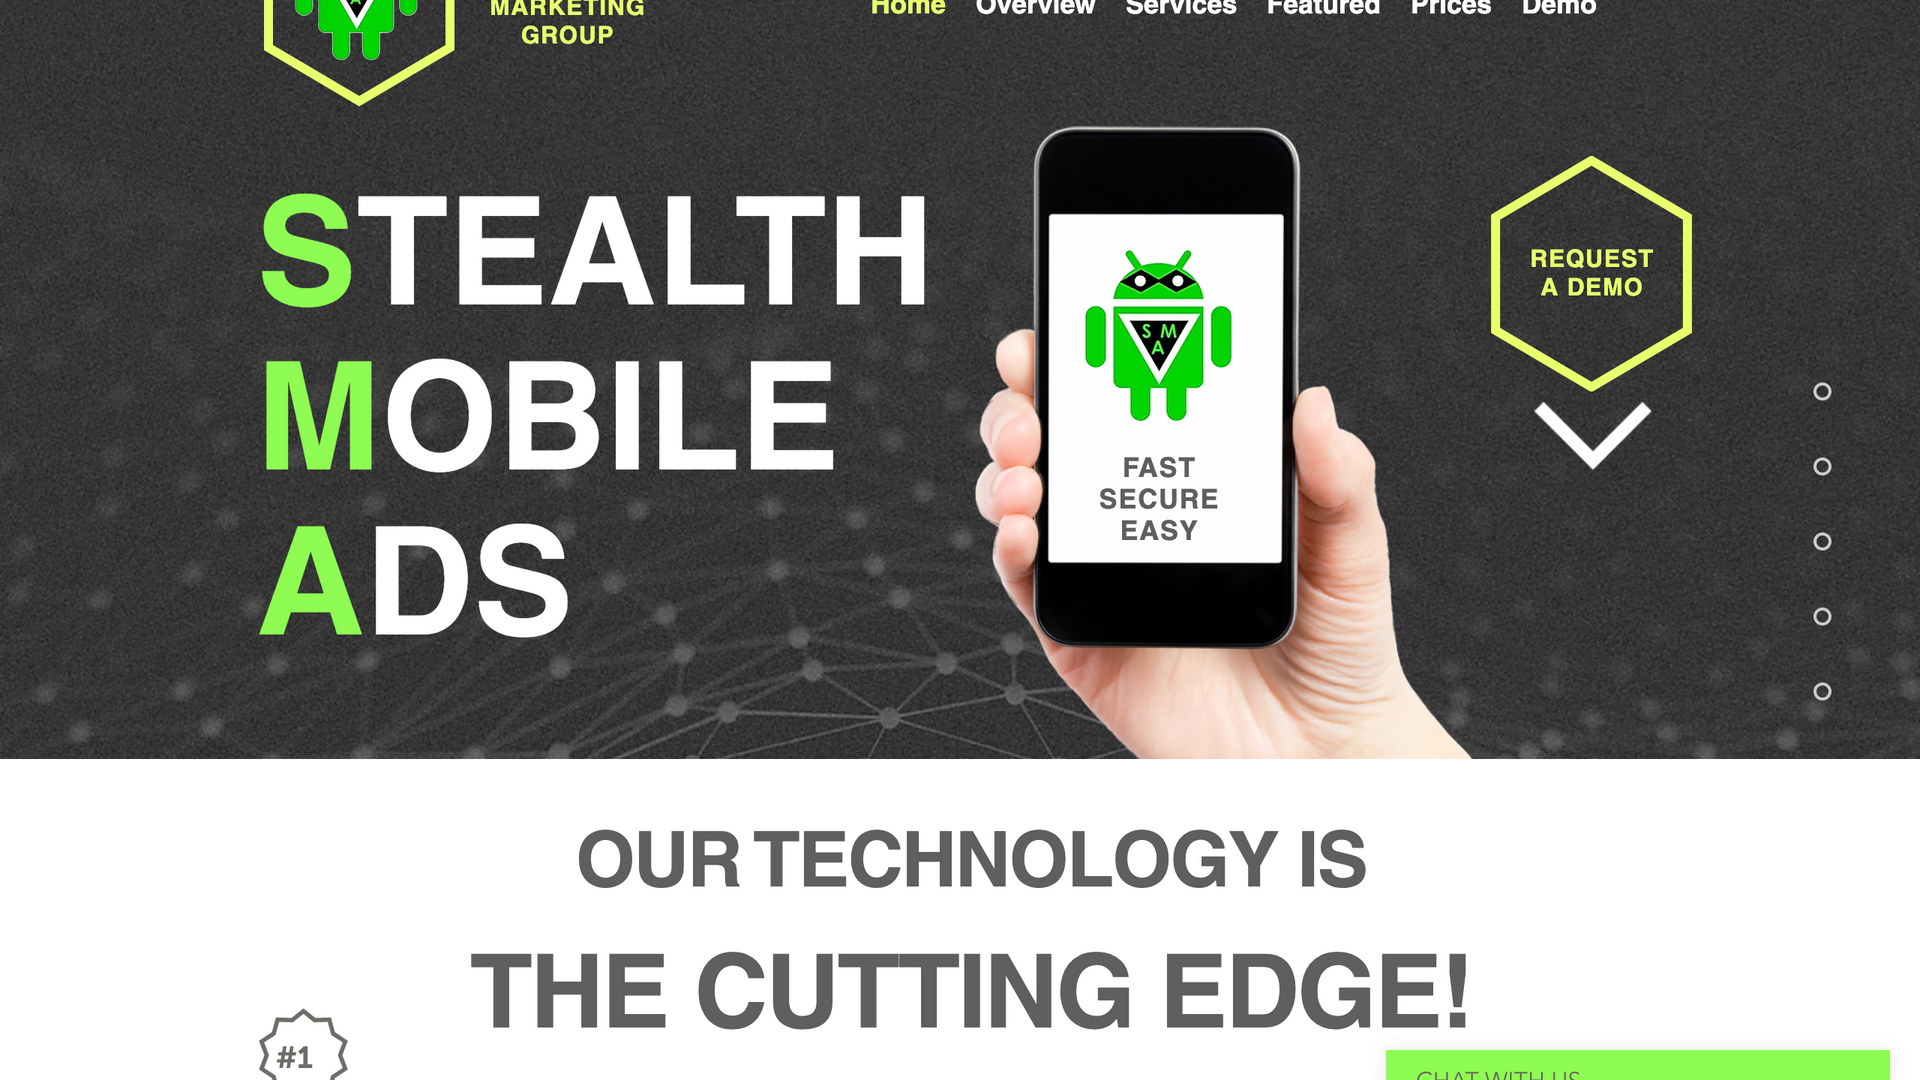 PROJECT: Stealth Mobile Ads